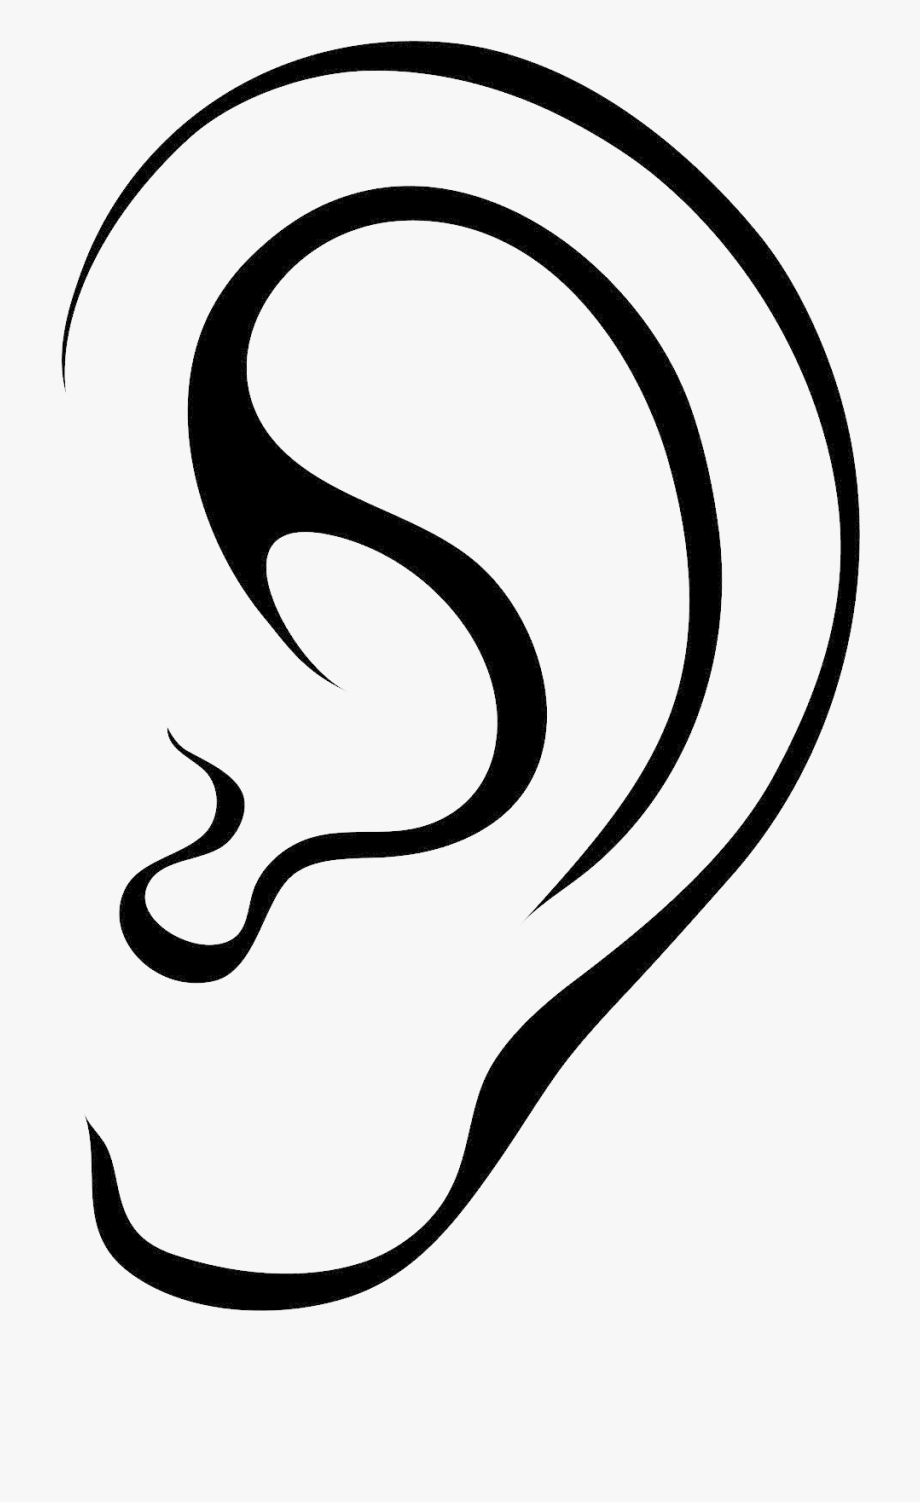 Outline picture of ear